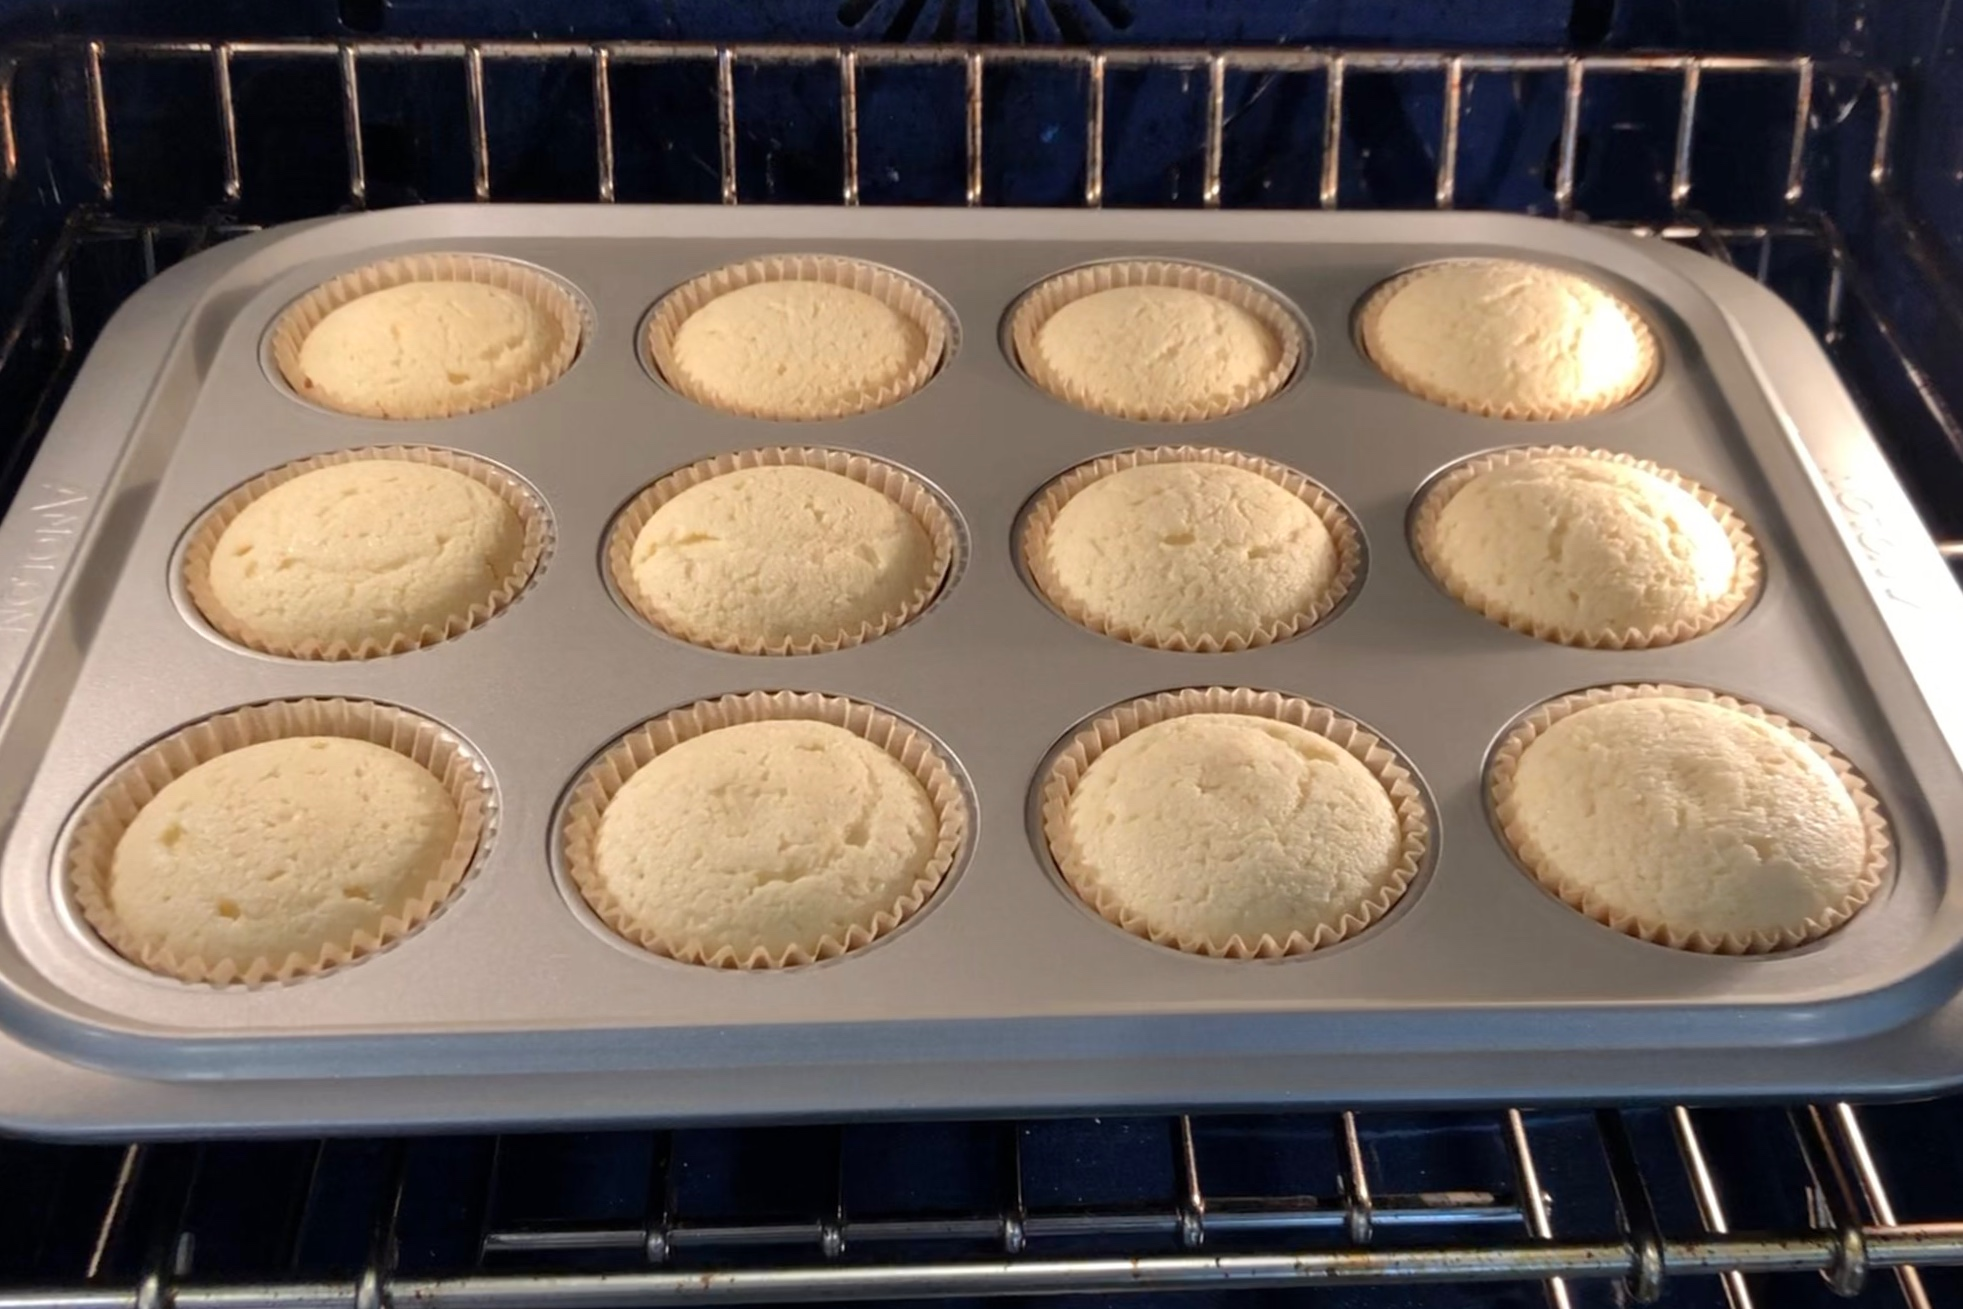 8. Bake cupcakes for 20 - 22 minutes. Remove from oven and let cool completely before decorating. -